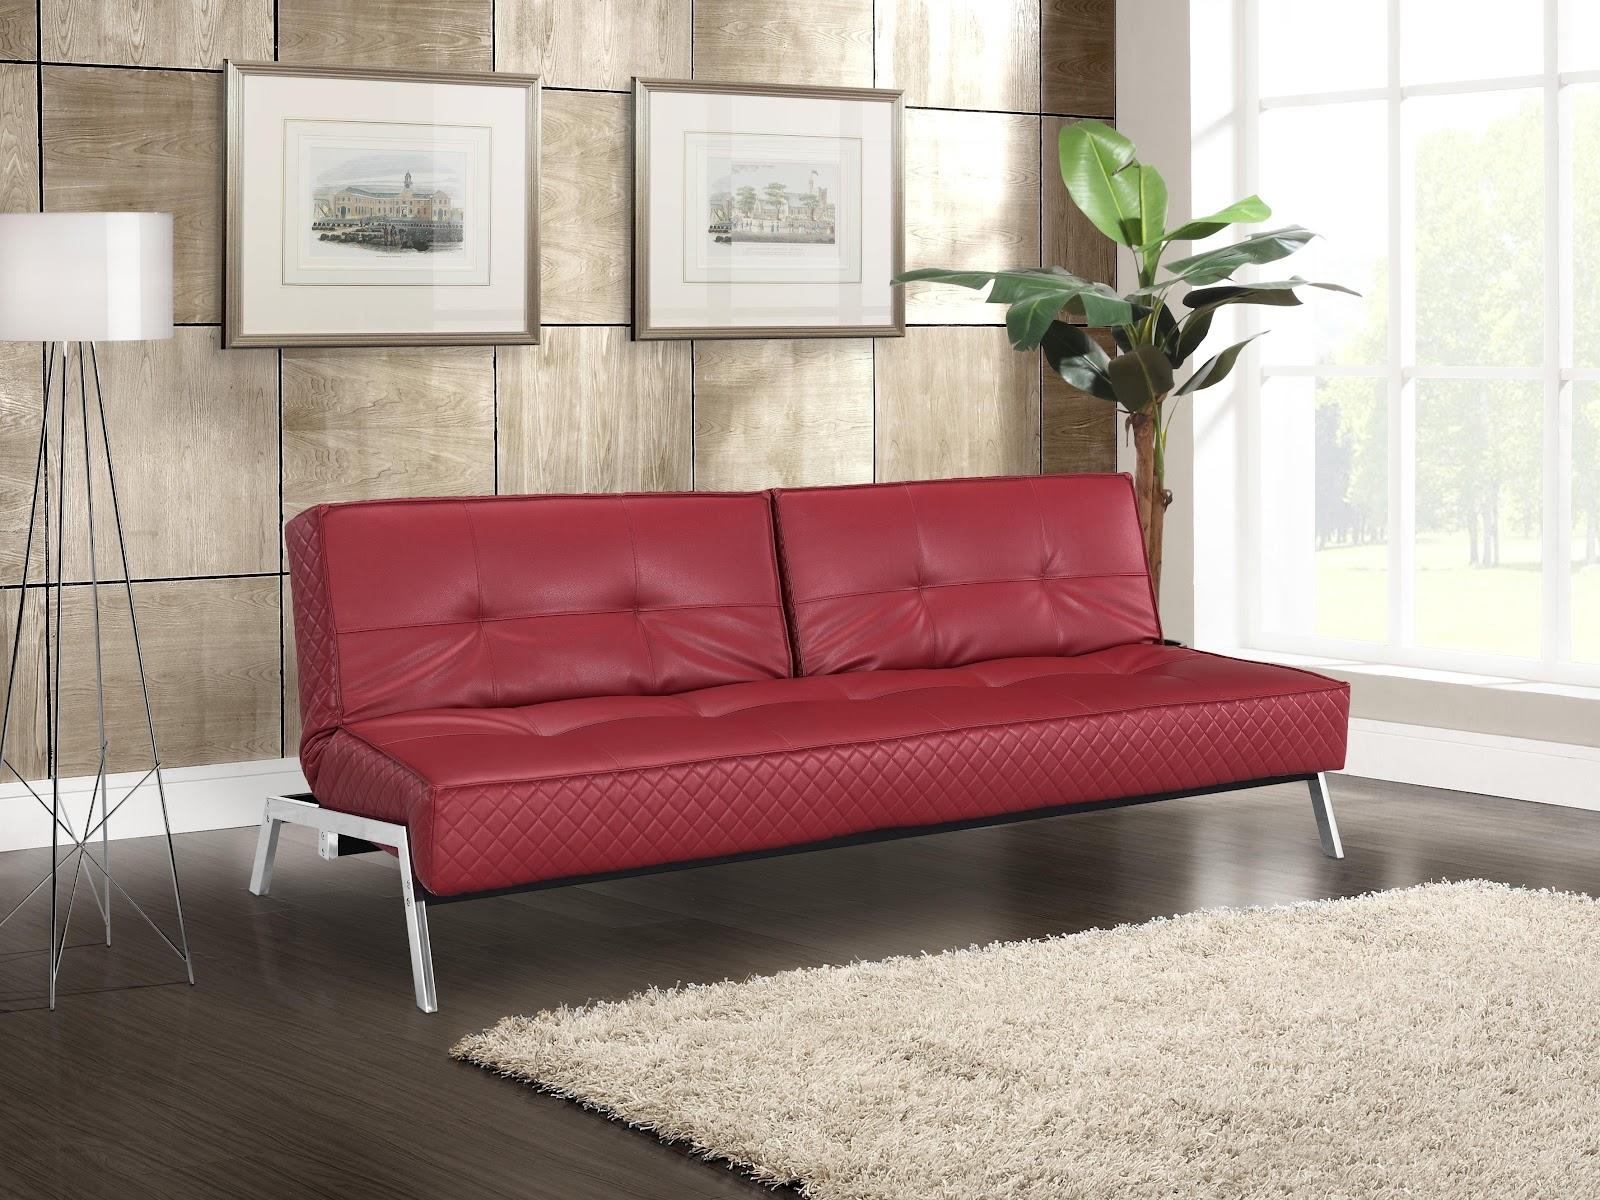 Dark Red Leather Sofa With Short Carving Black Wooden Legs On For Dark Red Leather Sofas (Image 7 of 20)